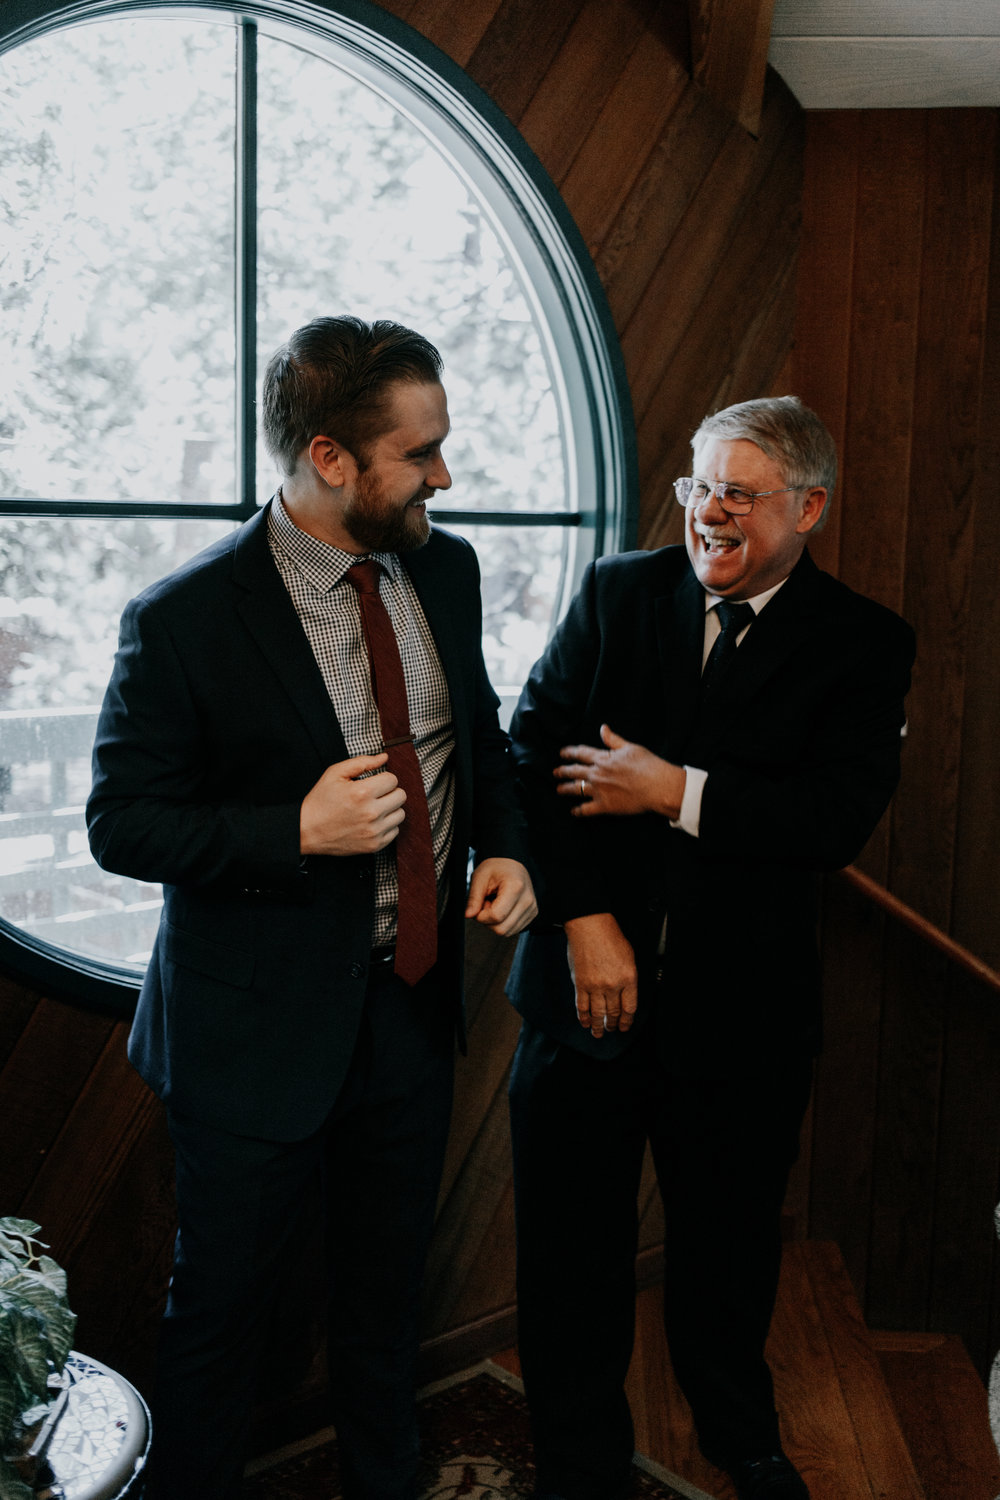 Father son moments | Wedding day